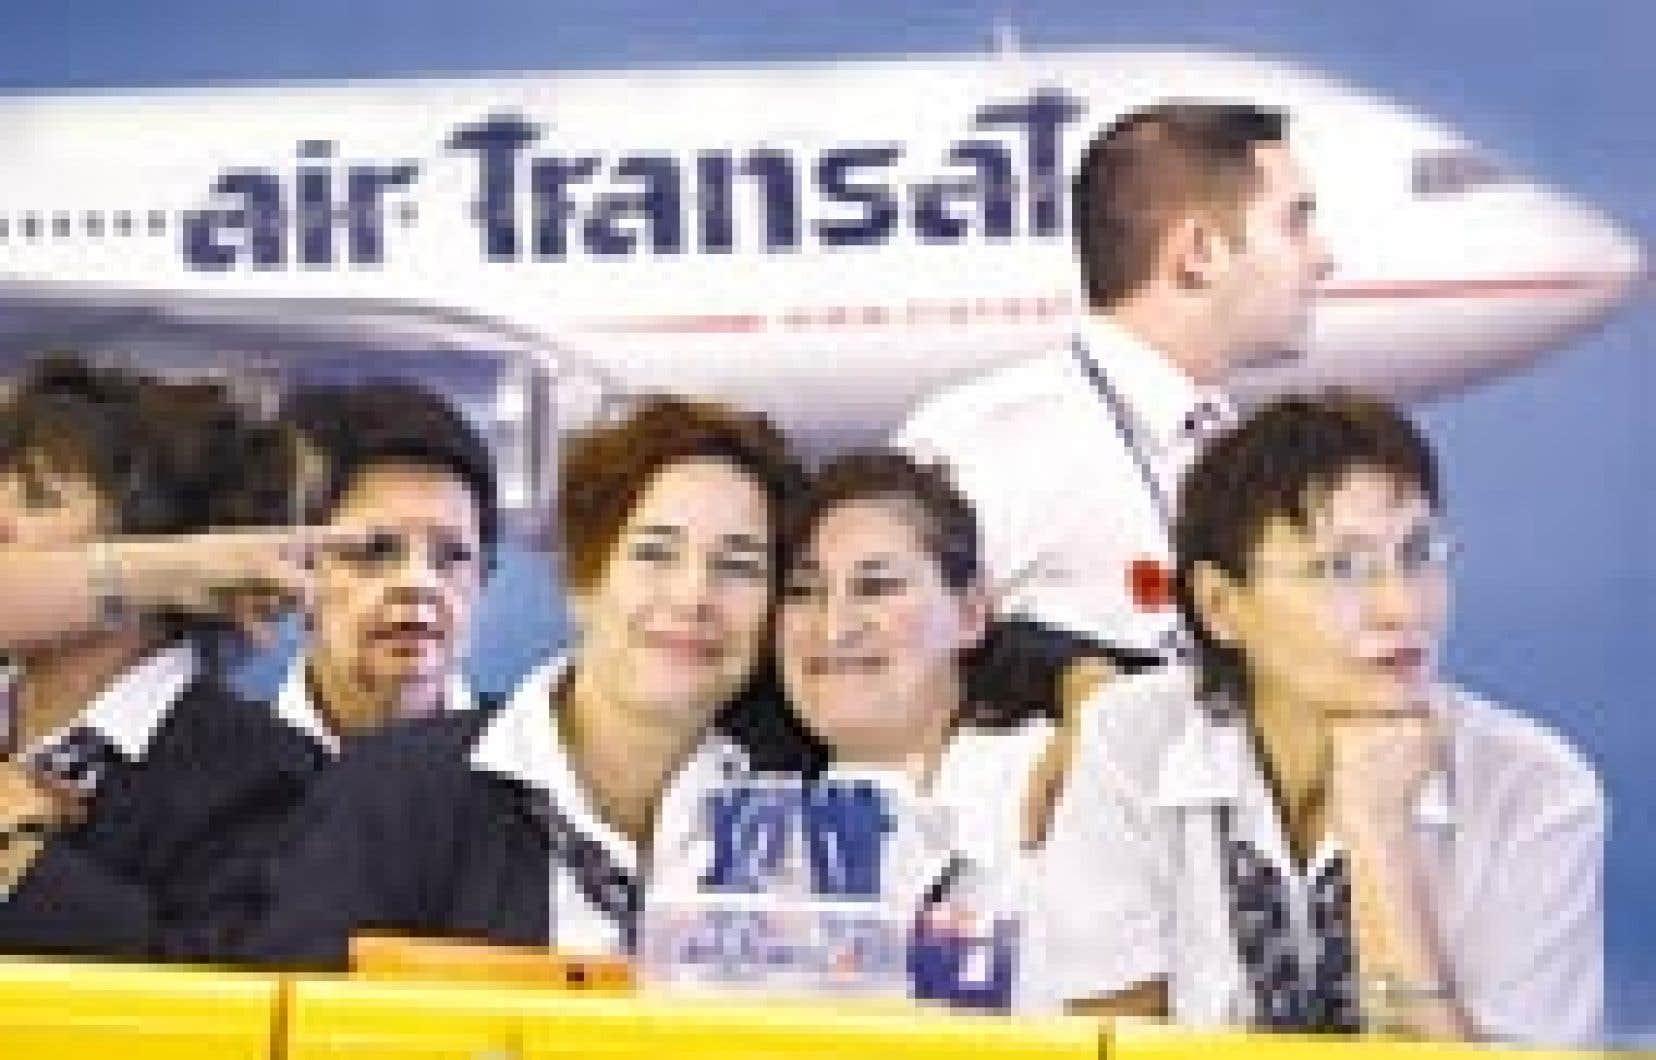 Des employées d'Air Transat lors de leur dernière journée de travail, hier, à Mirabel. À 20h55, elles sont descendues sur la piste de décollage pour saluer l'ultime vol de passagers, le TS-710, à destination de Paris.